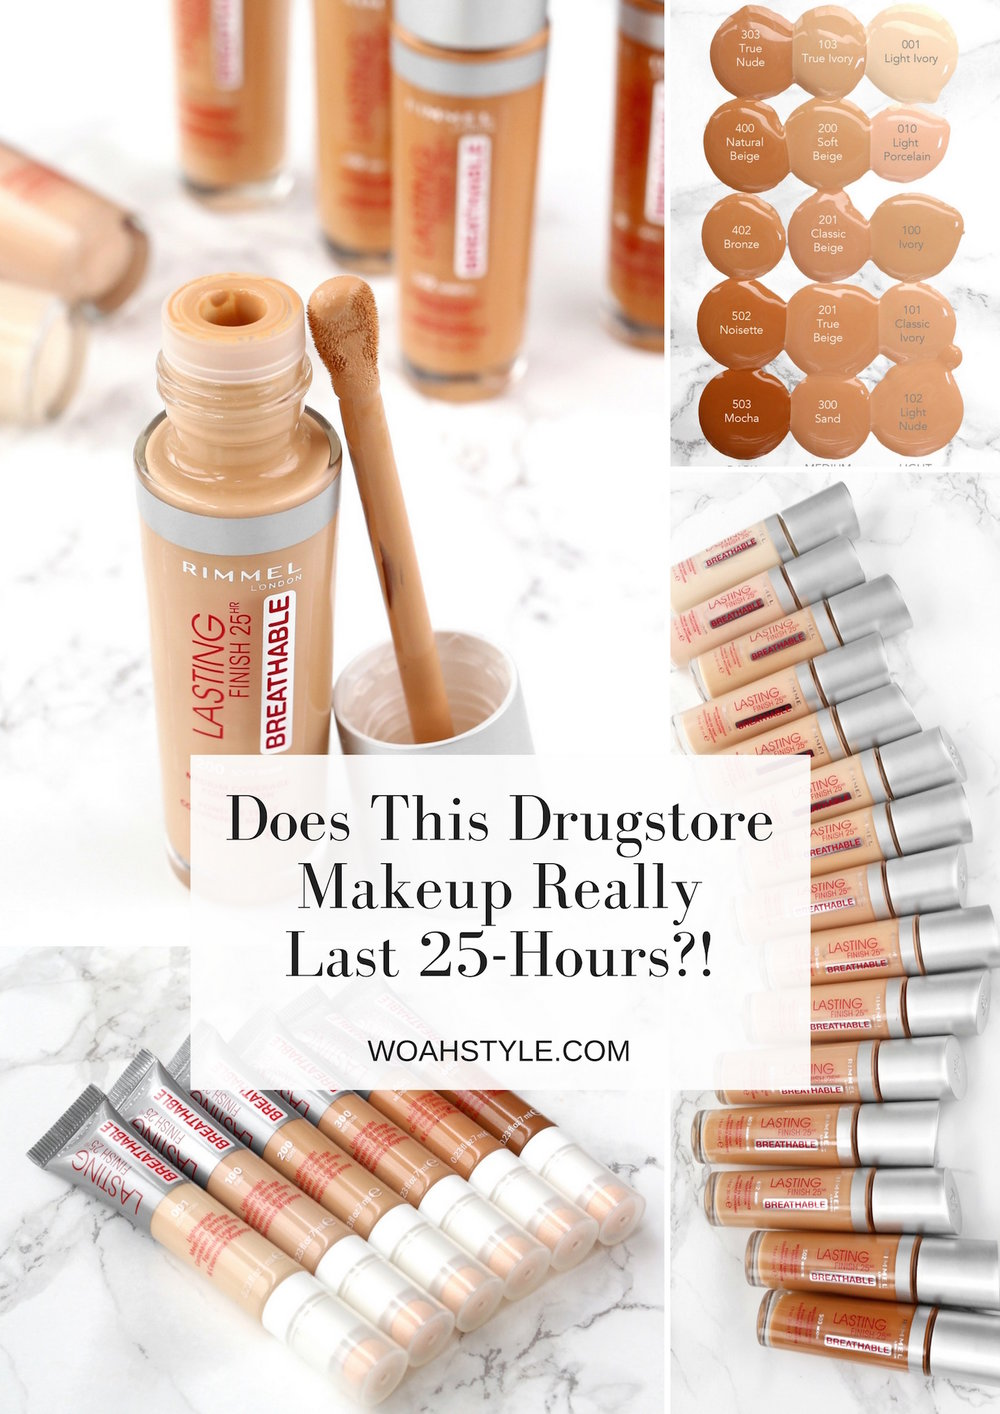 Does This Drugstore makeup really last 25 hours - rimmel lasting finish breathable foundation, concealer and primer review - woahstyle.com - canadian beauty blog by nathalie martin.jpg